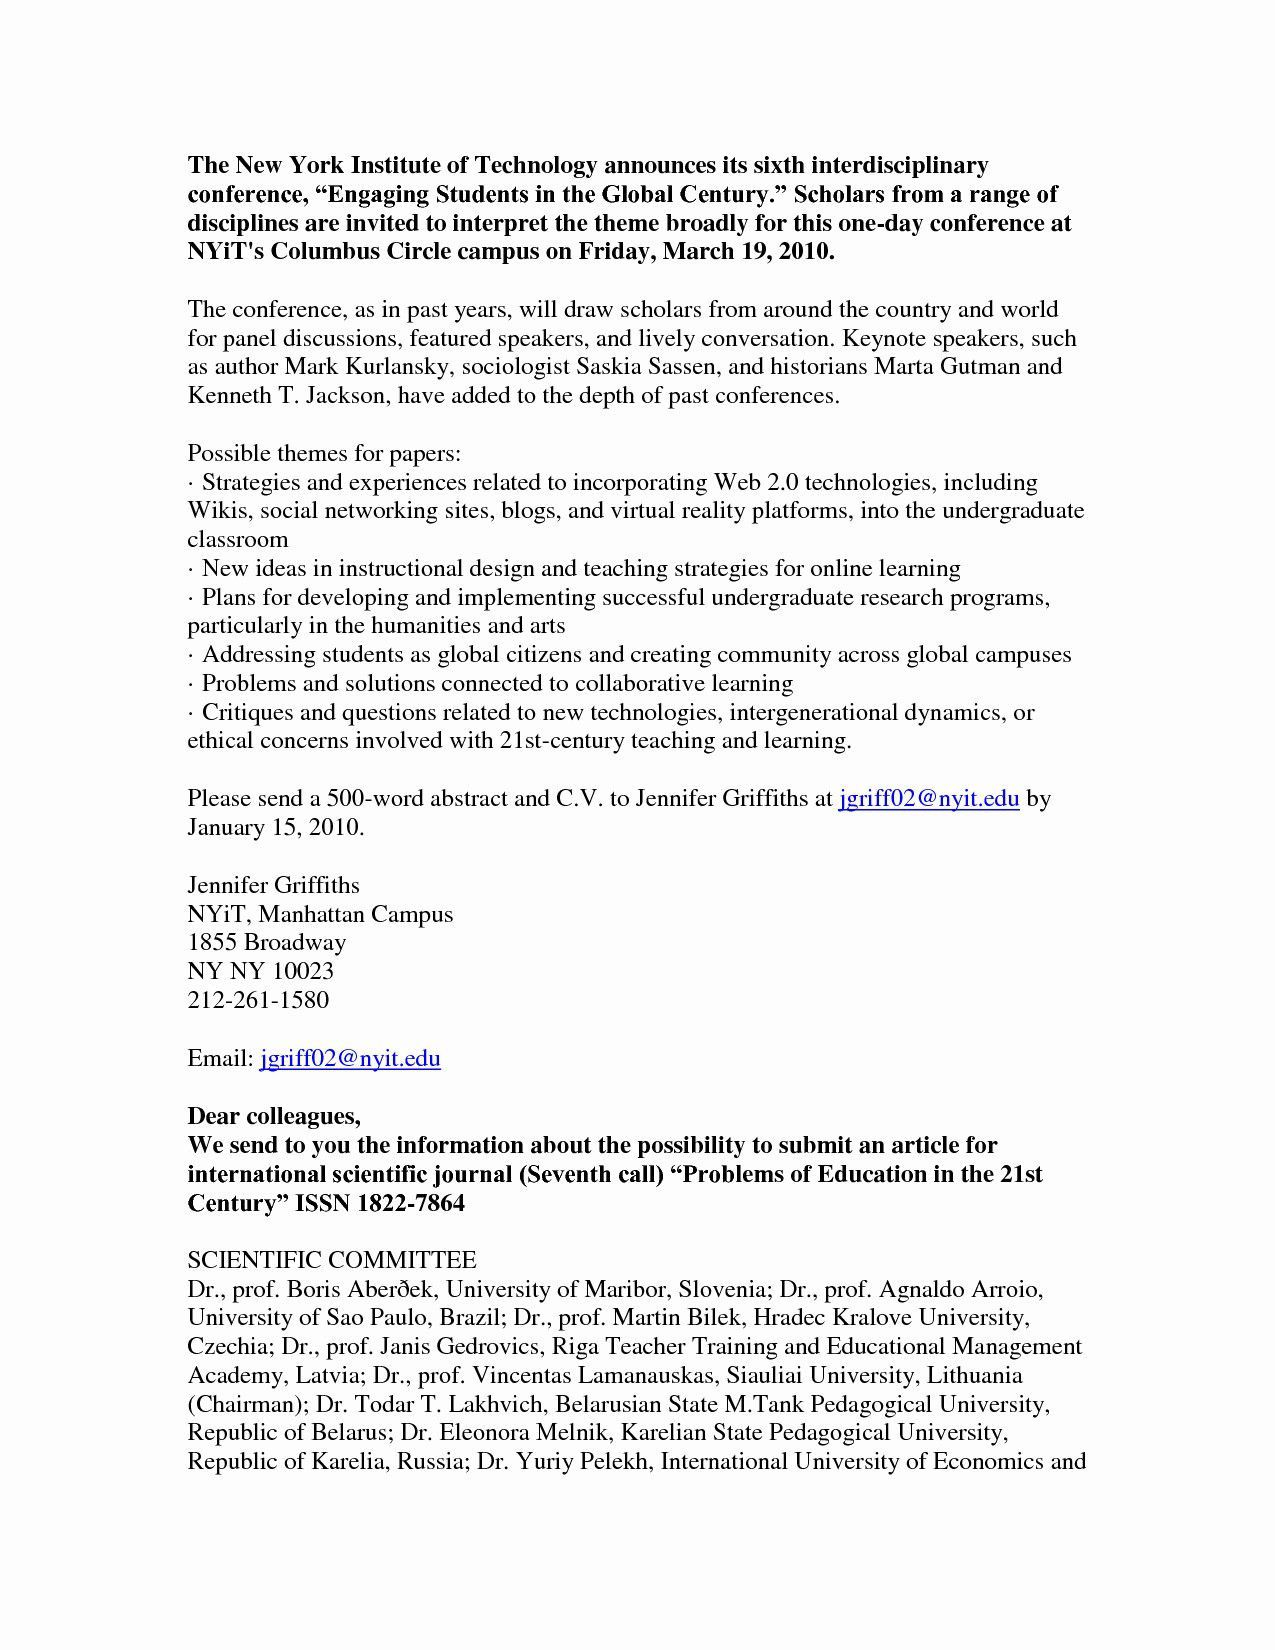 002 Striking Research Paper Proposal Template Apa Highest Clarity Full